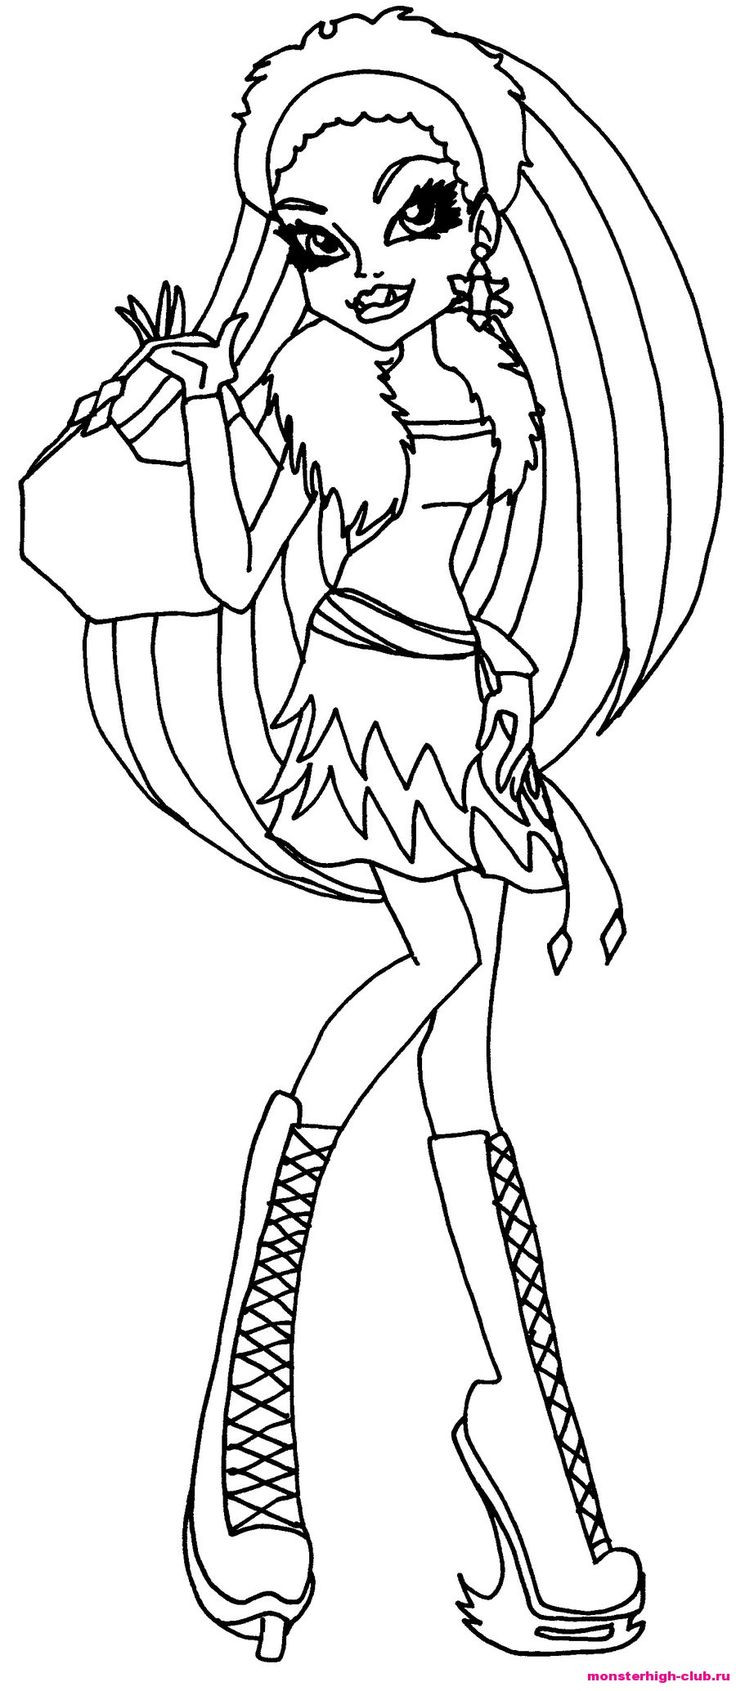 Best ideas about Coloring Pages For Girls Monster High Printable Frankin Stein . Save or Pin Monster high Frankie Stein coloring page Now.